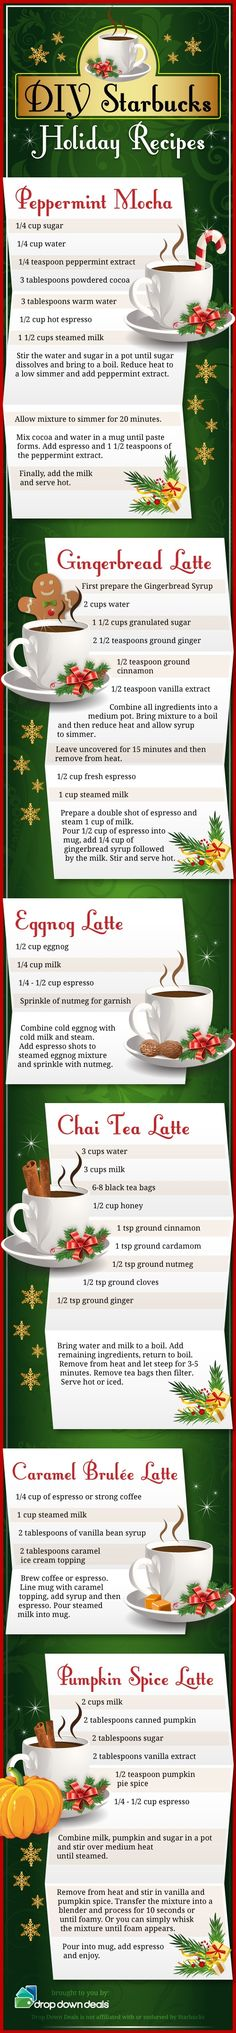 DIY Starbucks Holiday Recipes | Savvy Living